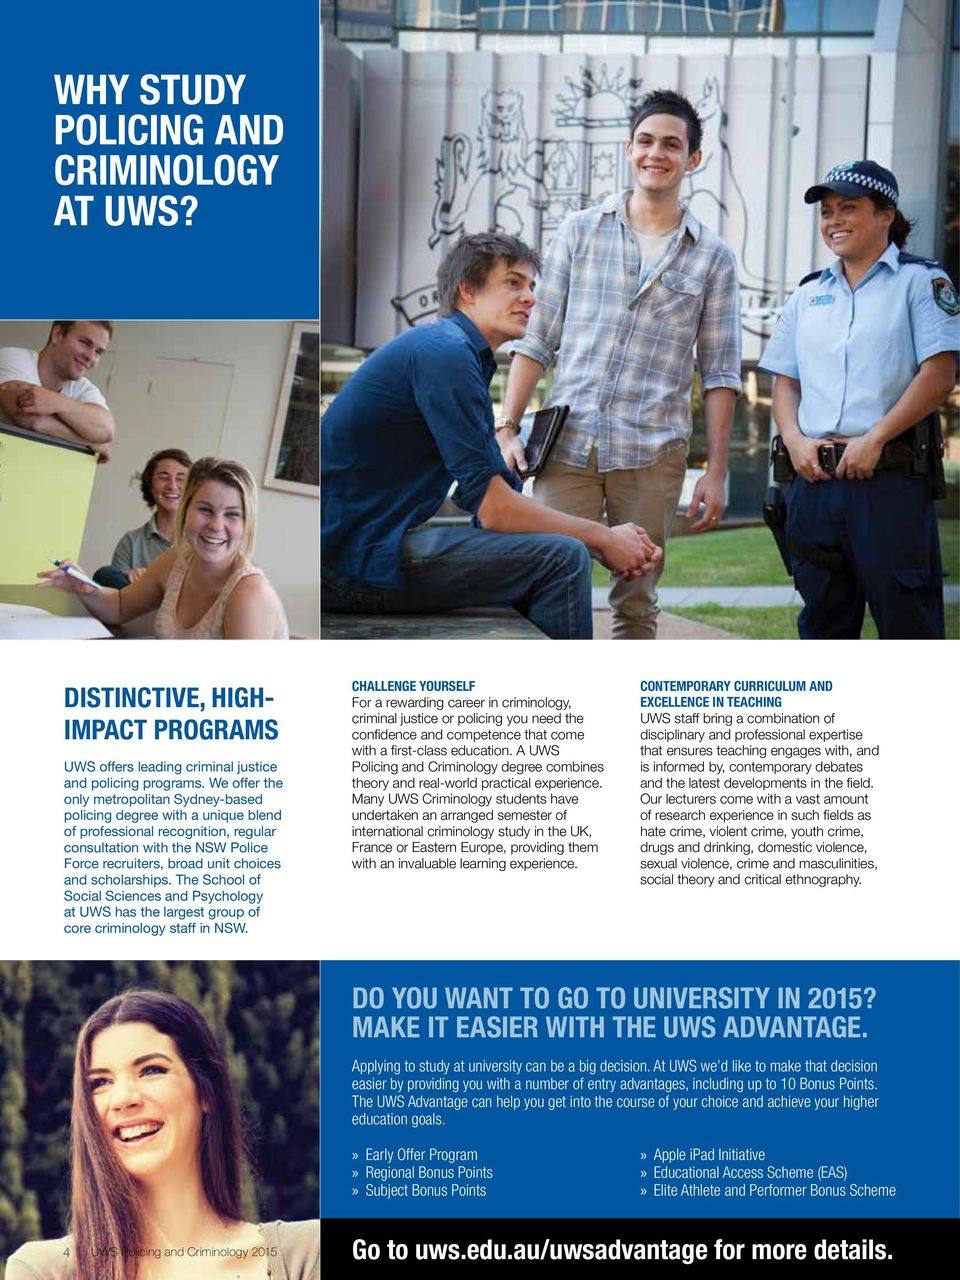 scholarships. The School of Social Sciences and Psychology at UWS has the largest group of core criminology staff in NSW.